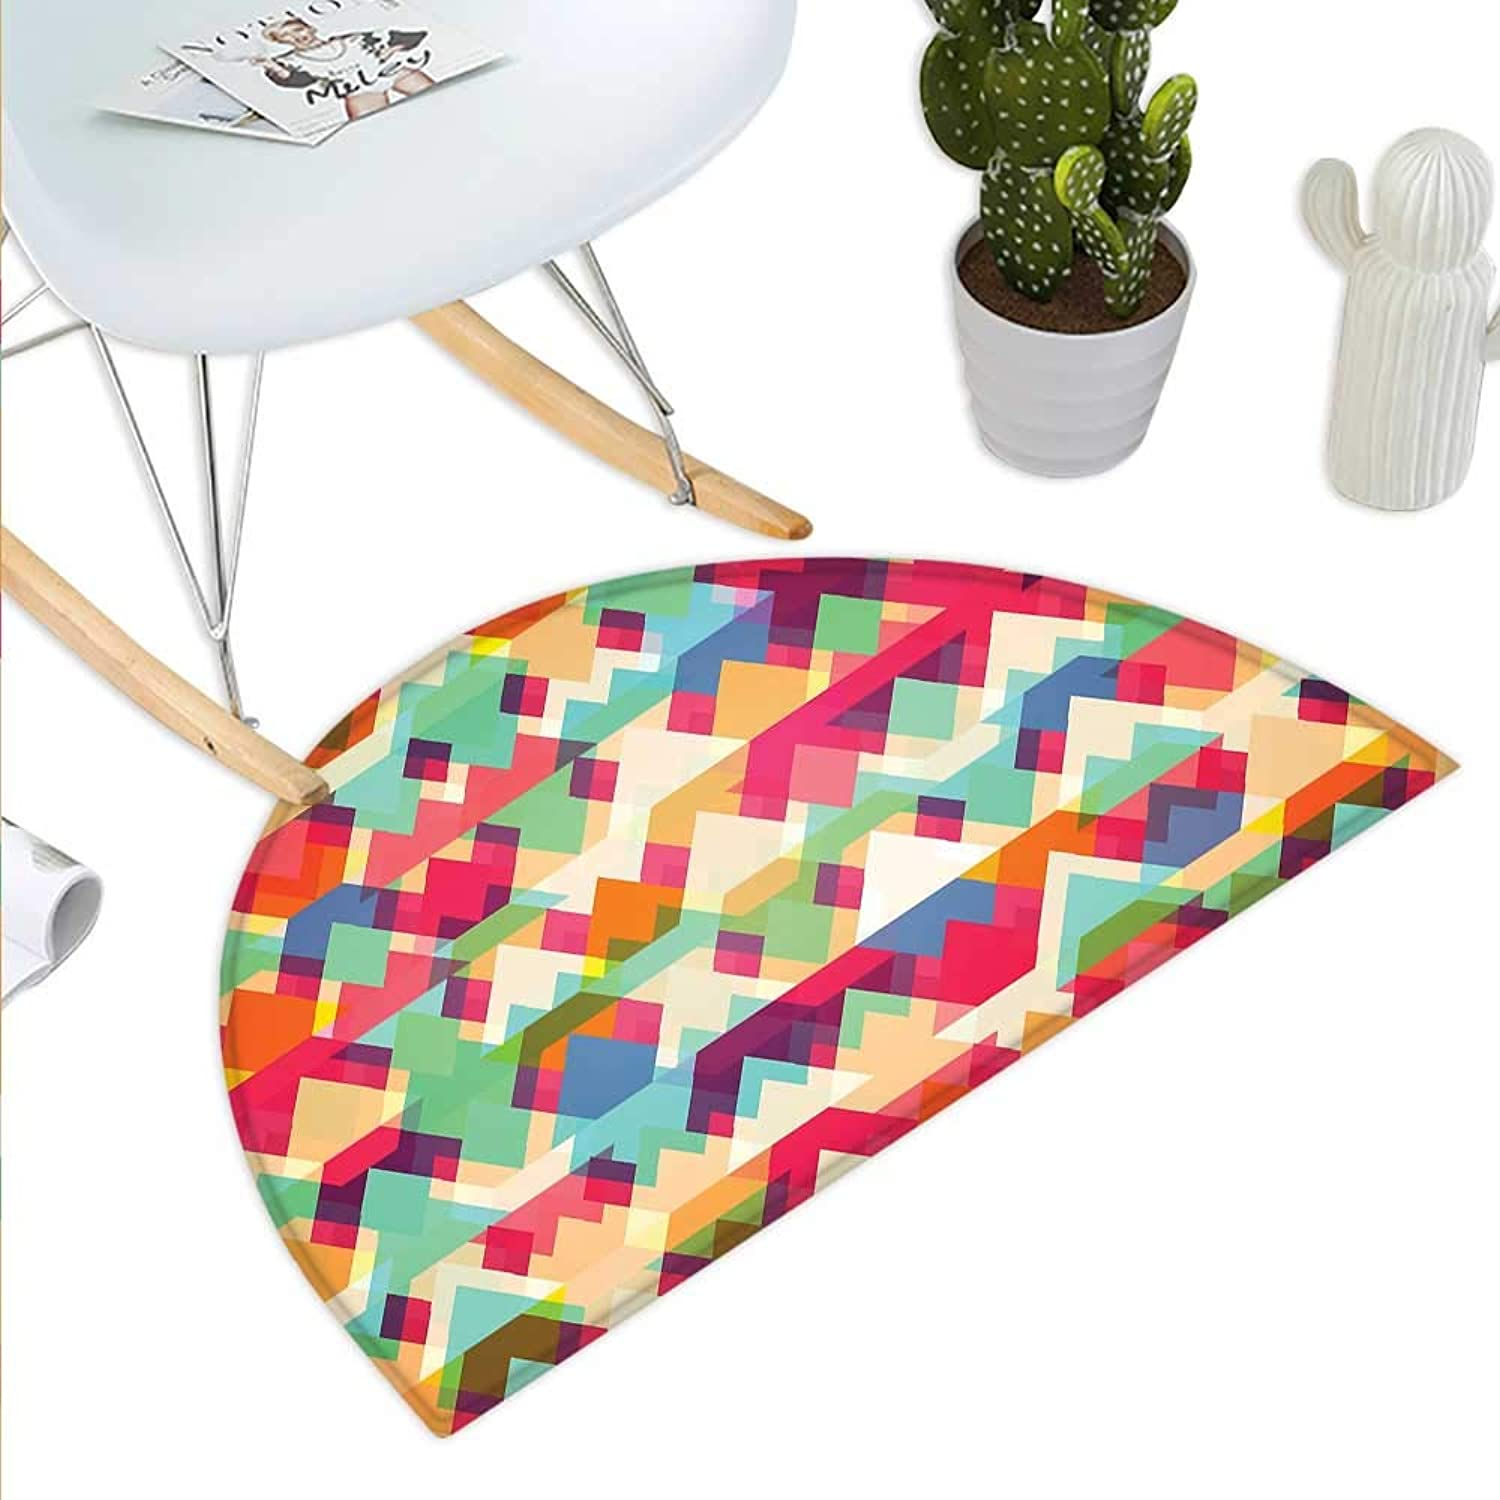 Indie Semicircle Doormat Abstract Vibrant colorful Triangles Overlap Geometric Design with Artistic Display Halfmoon doormats H 39.3  xD 59  Multicolor